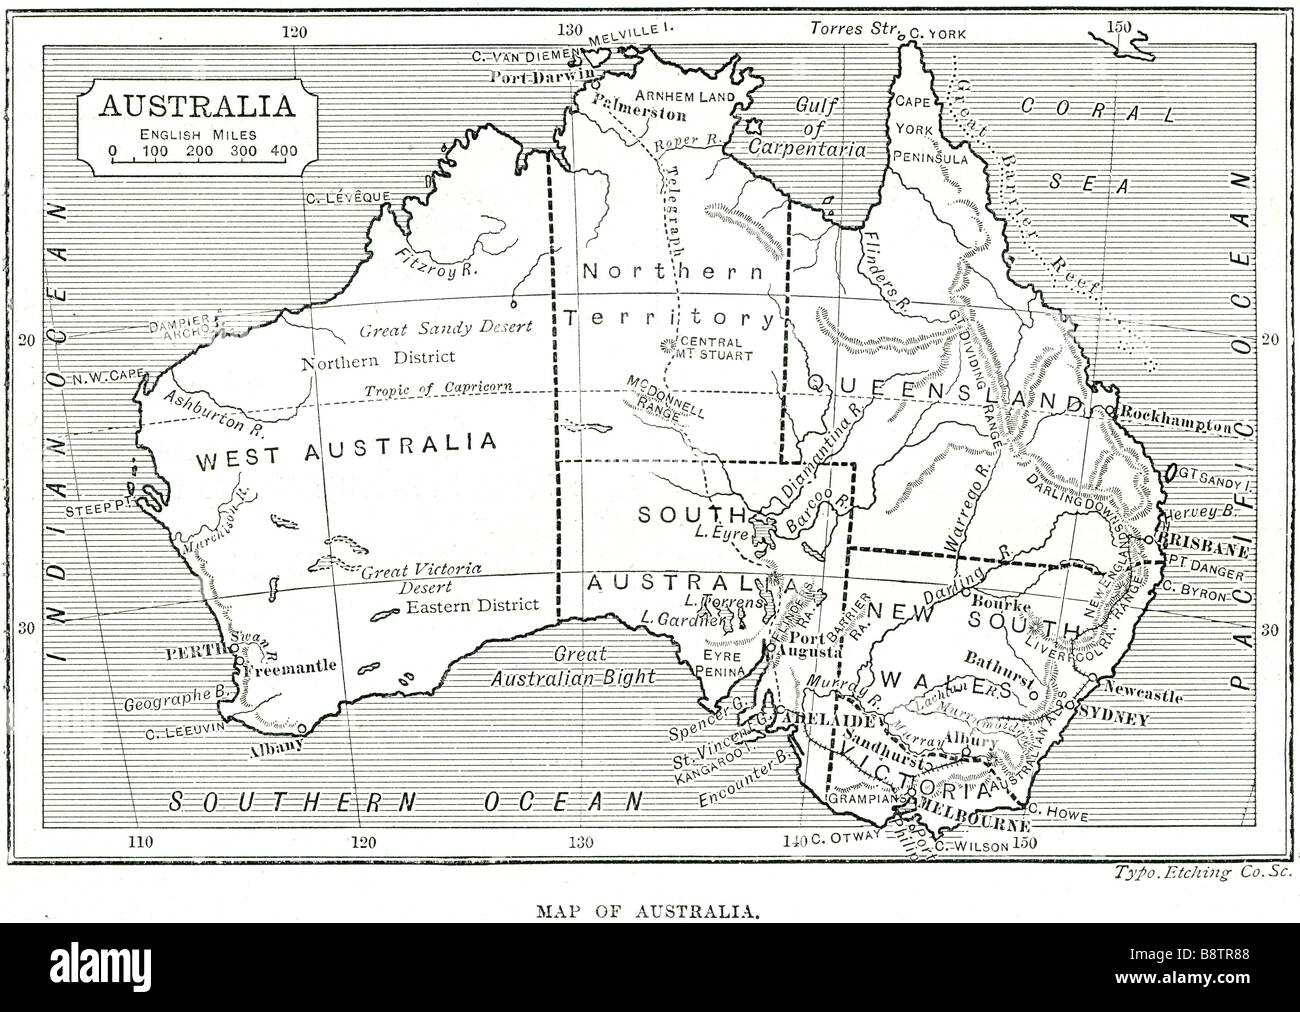 map of australia Australia, officially the Commonwealth of Australia, is a country in the southern hemisphere comprising - Stock Image